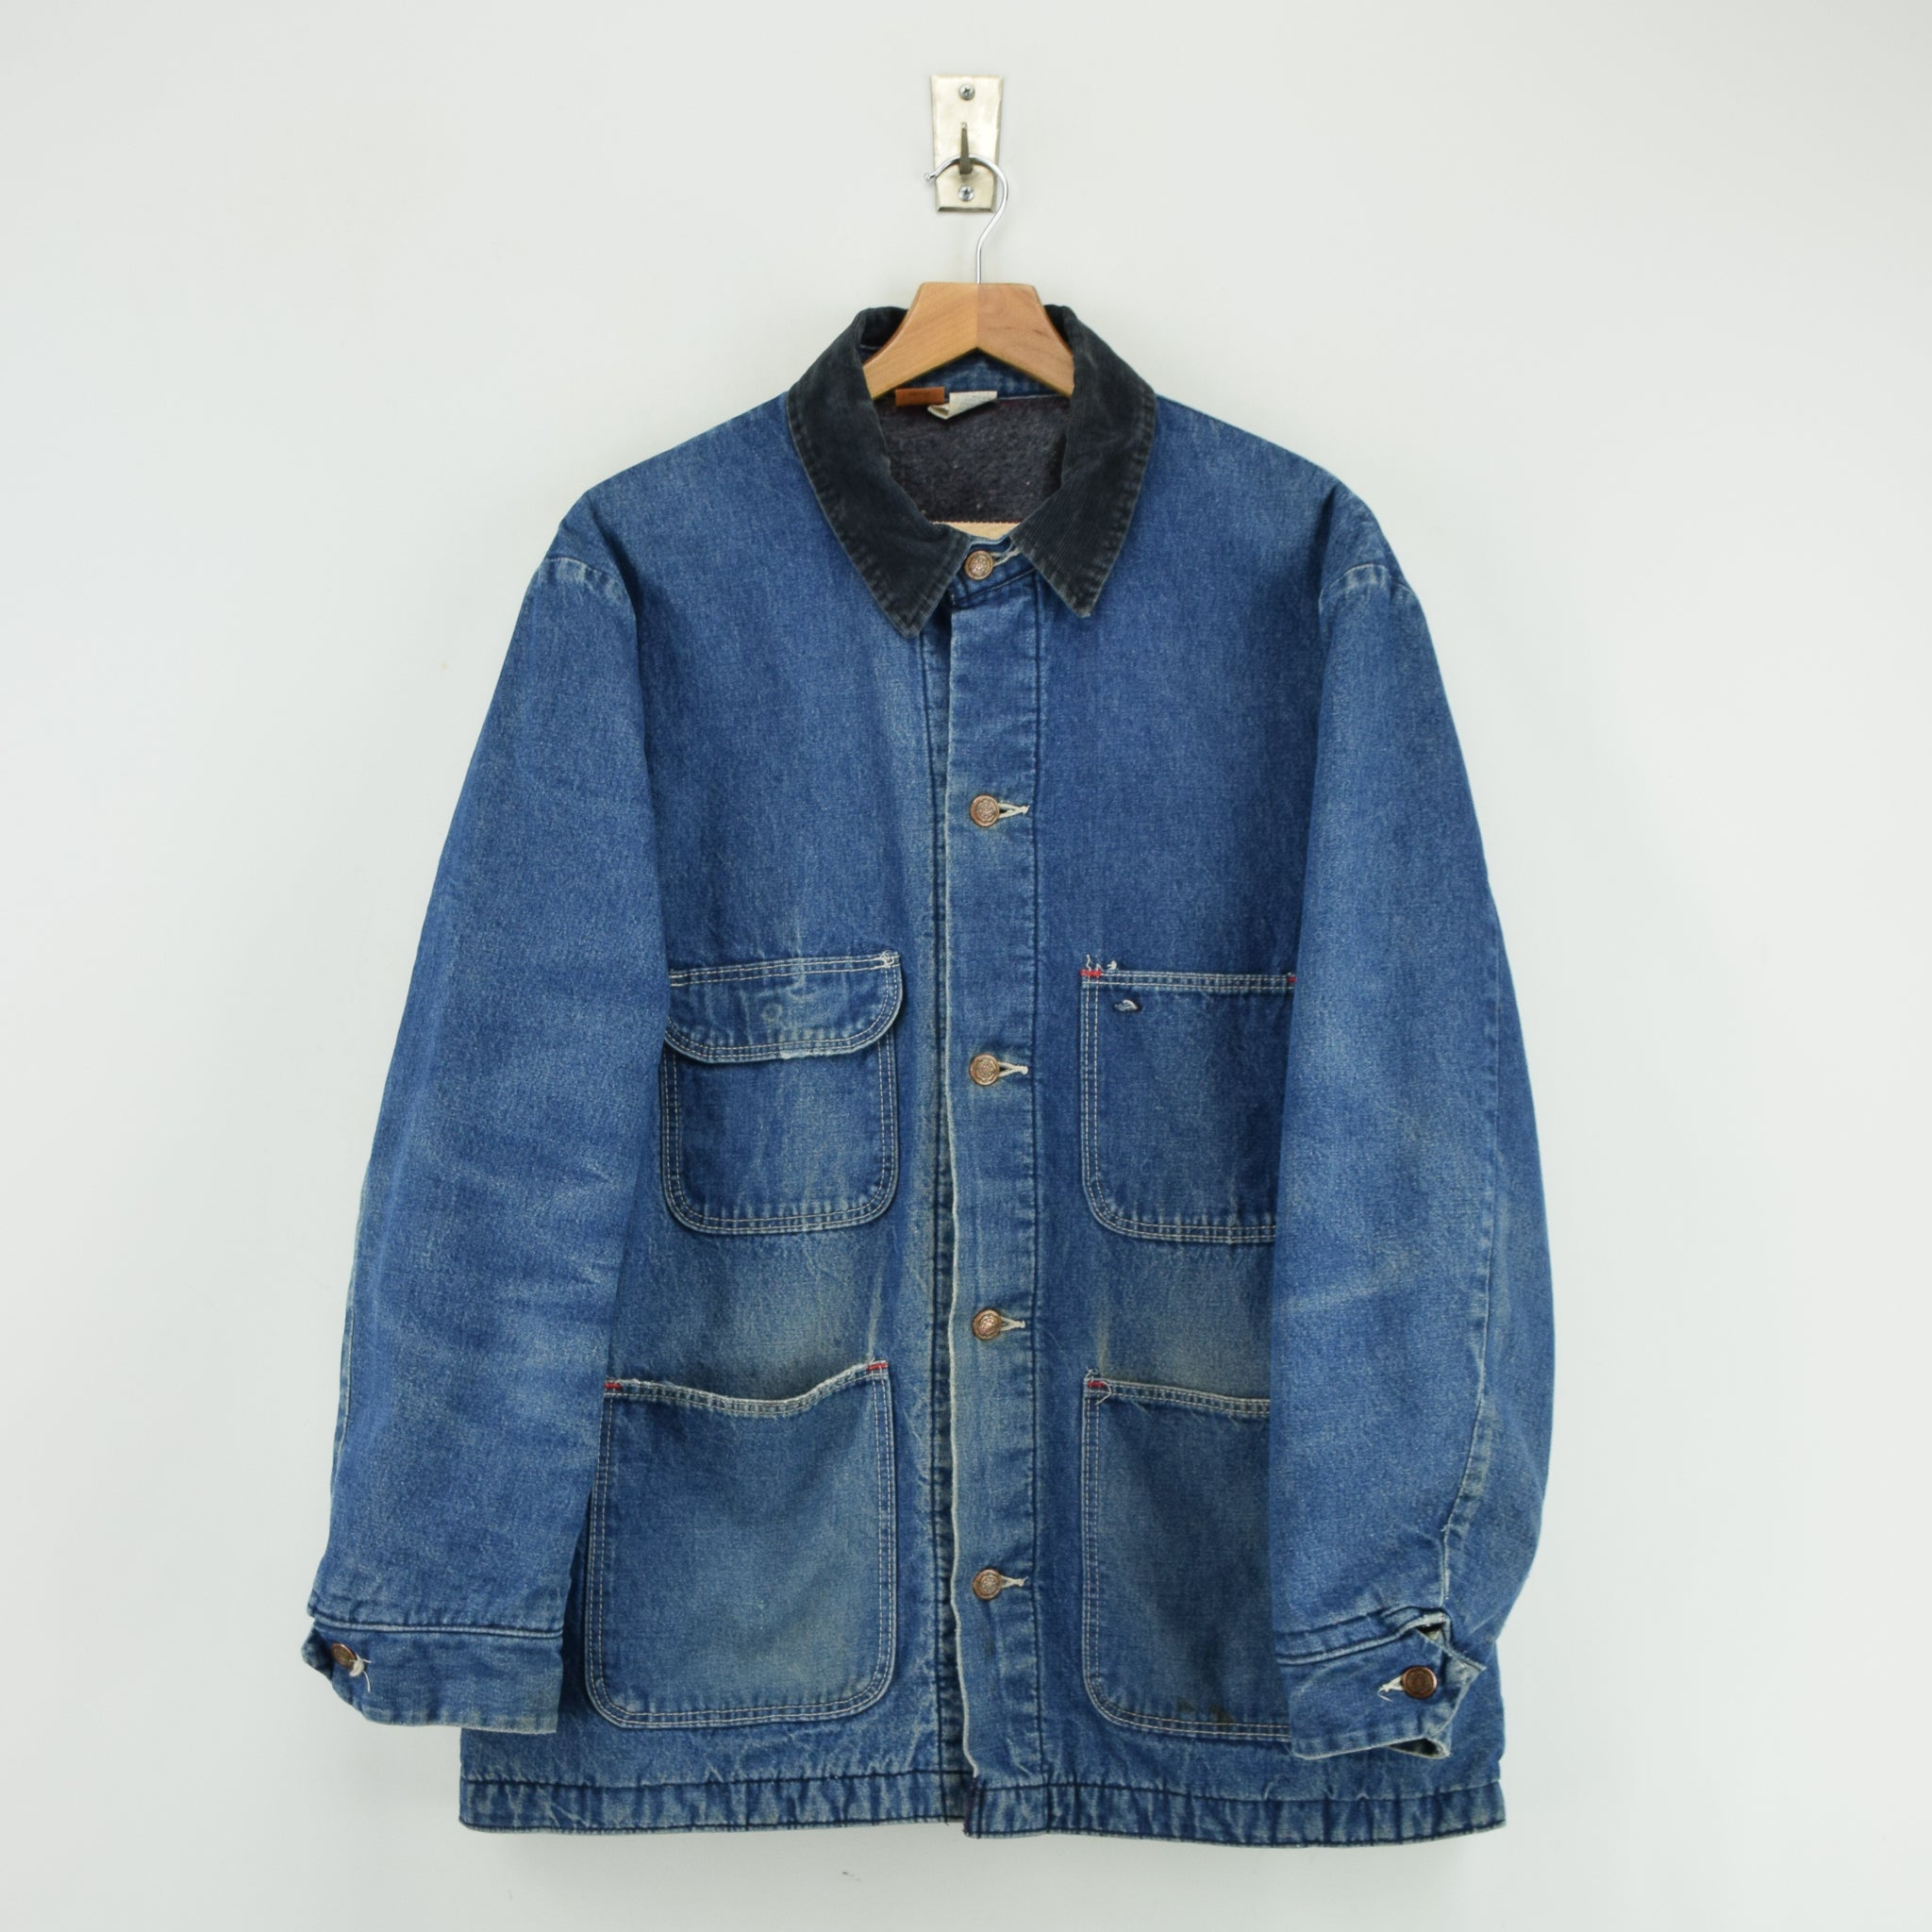 Vintage Wrangler Big Ben Blue Blanket Lined Denim Chore Jacket Made in USA L front